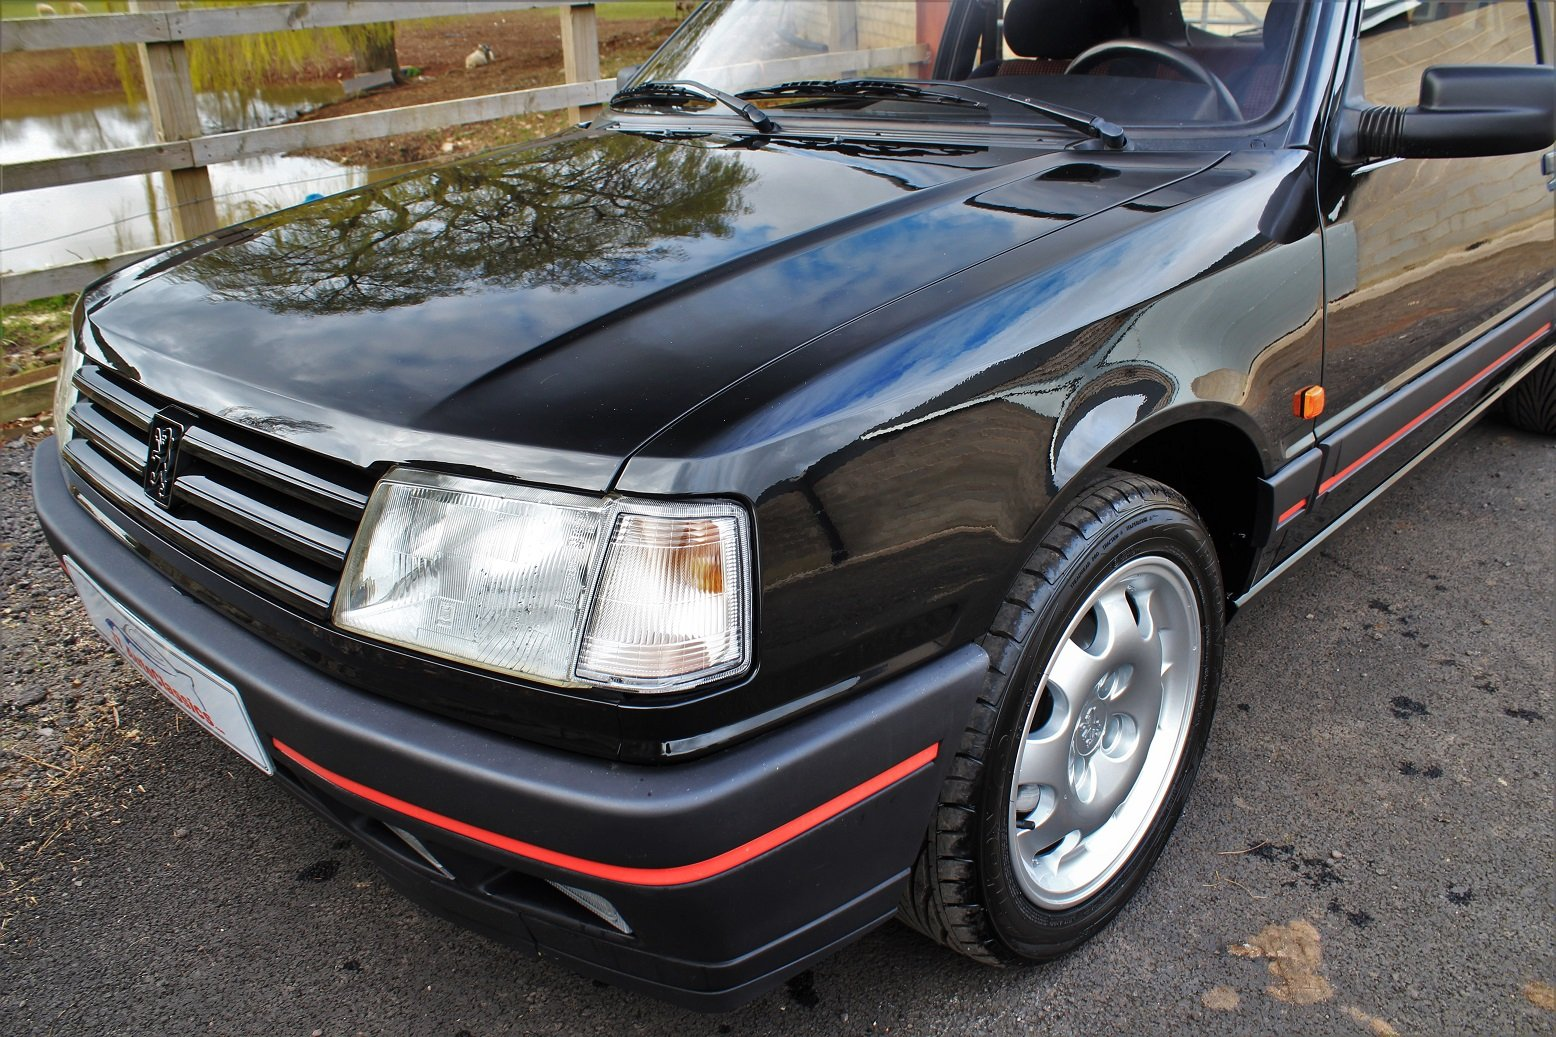 1990 Peugeot 309GTI 3dr,54,903 miles from new For Sale (picture 3 of 6)